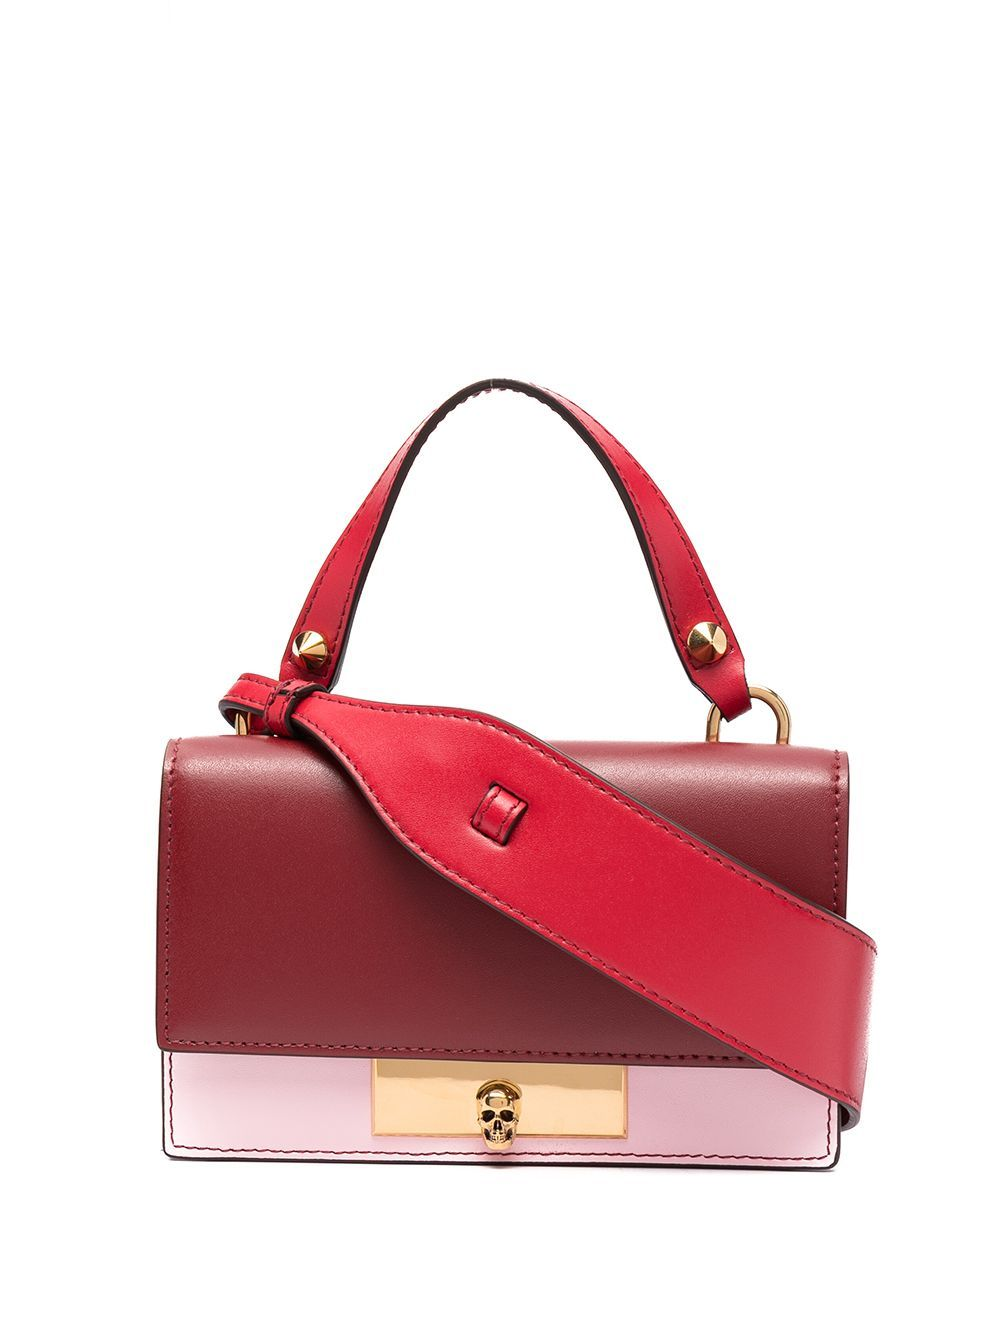 Alexander Mcqueen ALEXANDER MCQUEEN WOMEN'S RED LEATHER HANDBAG